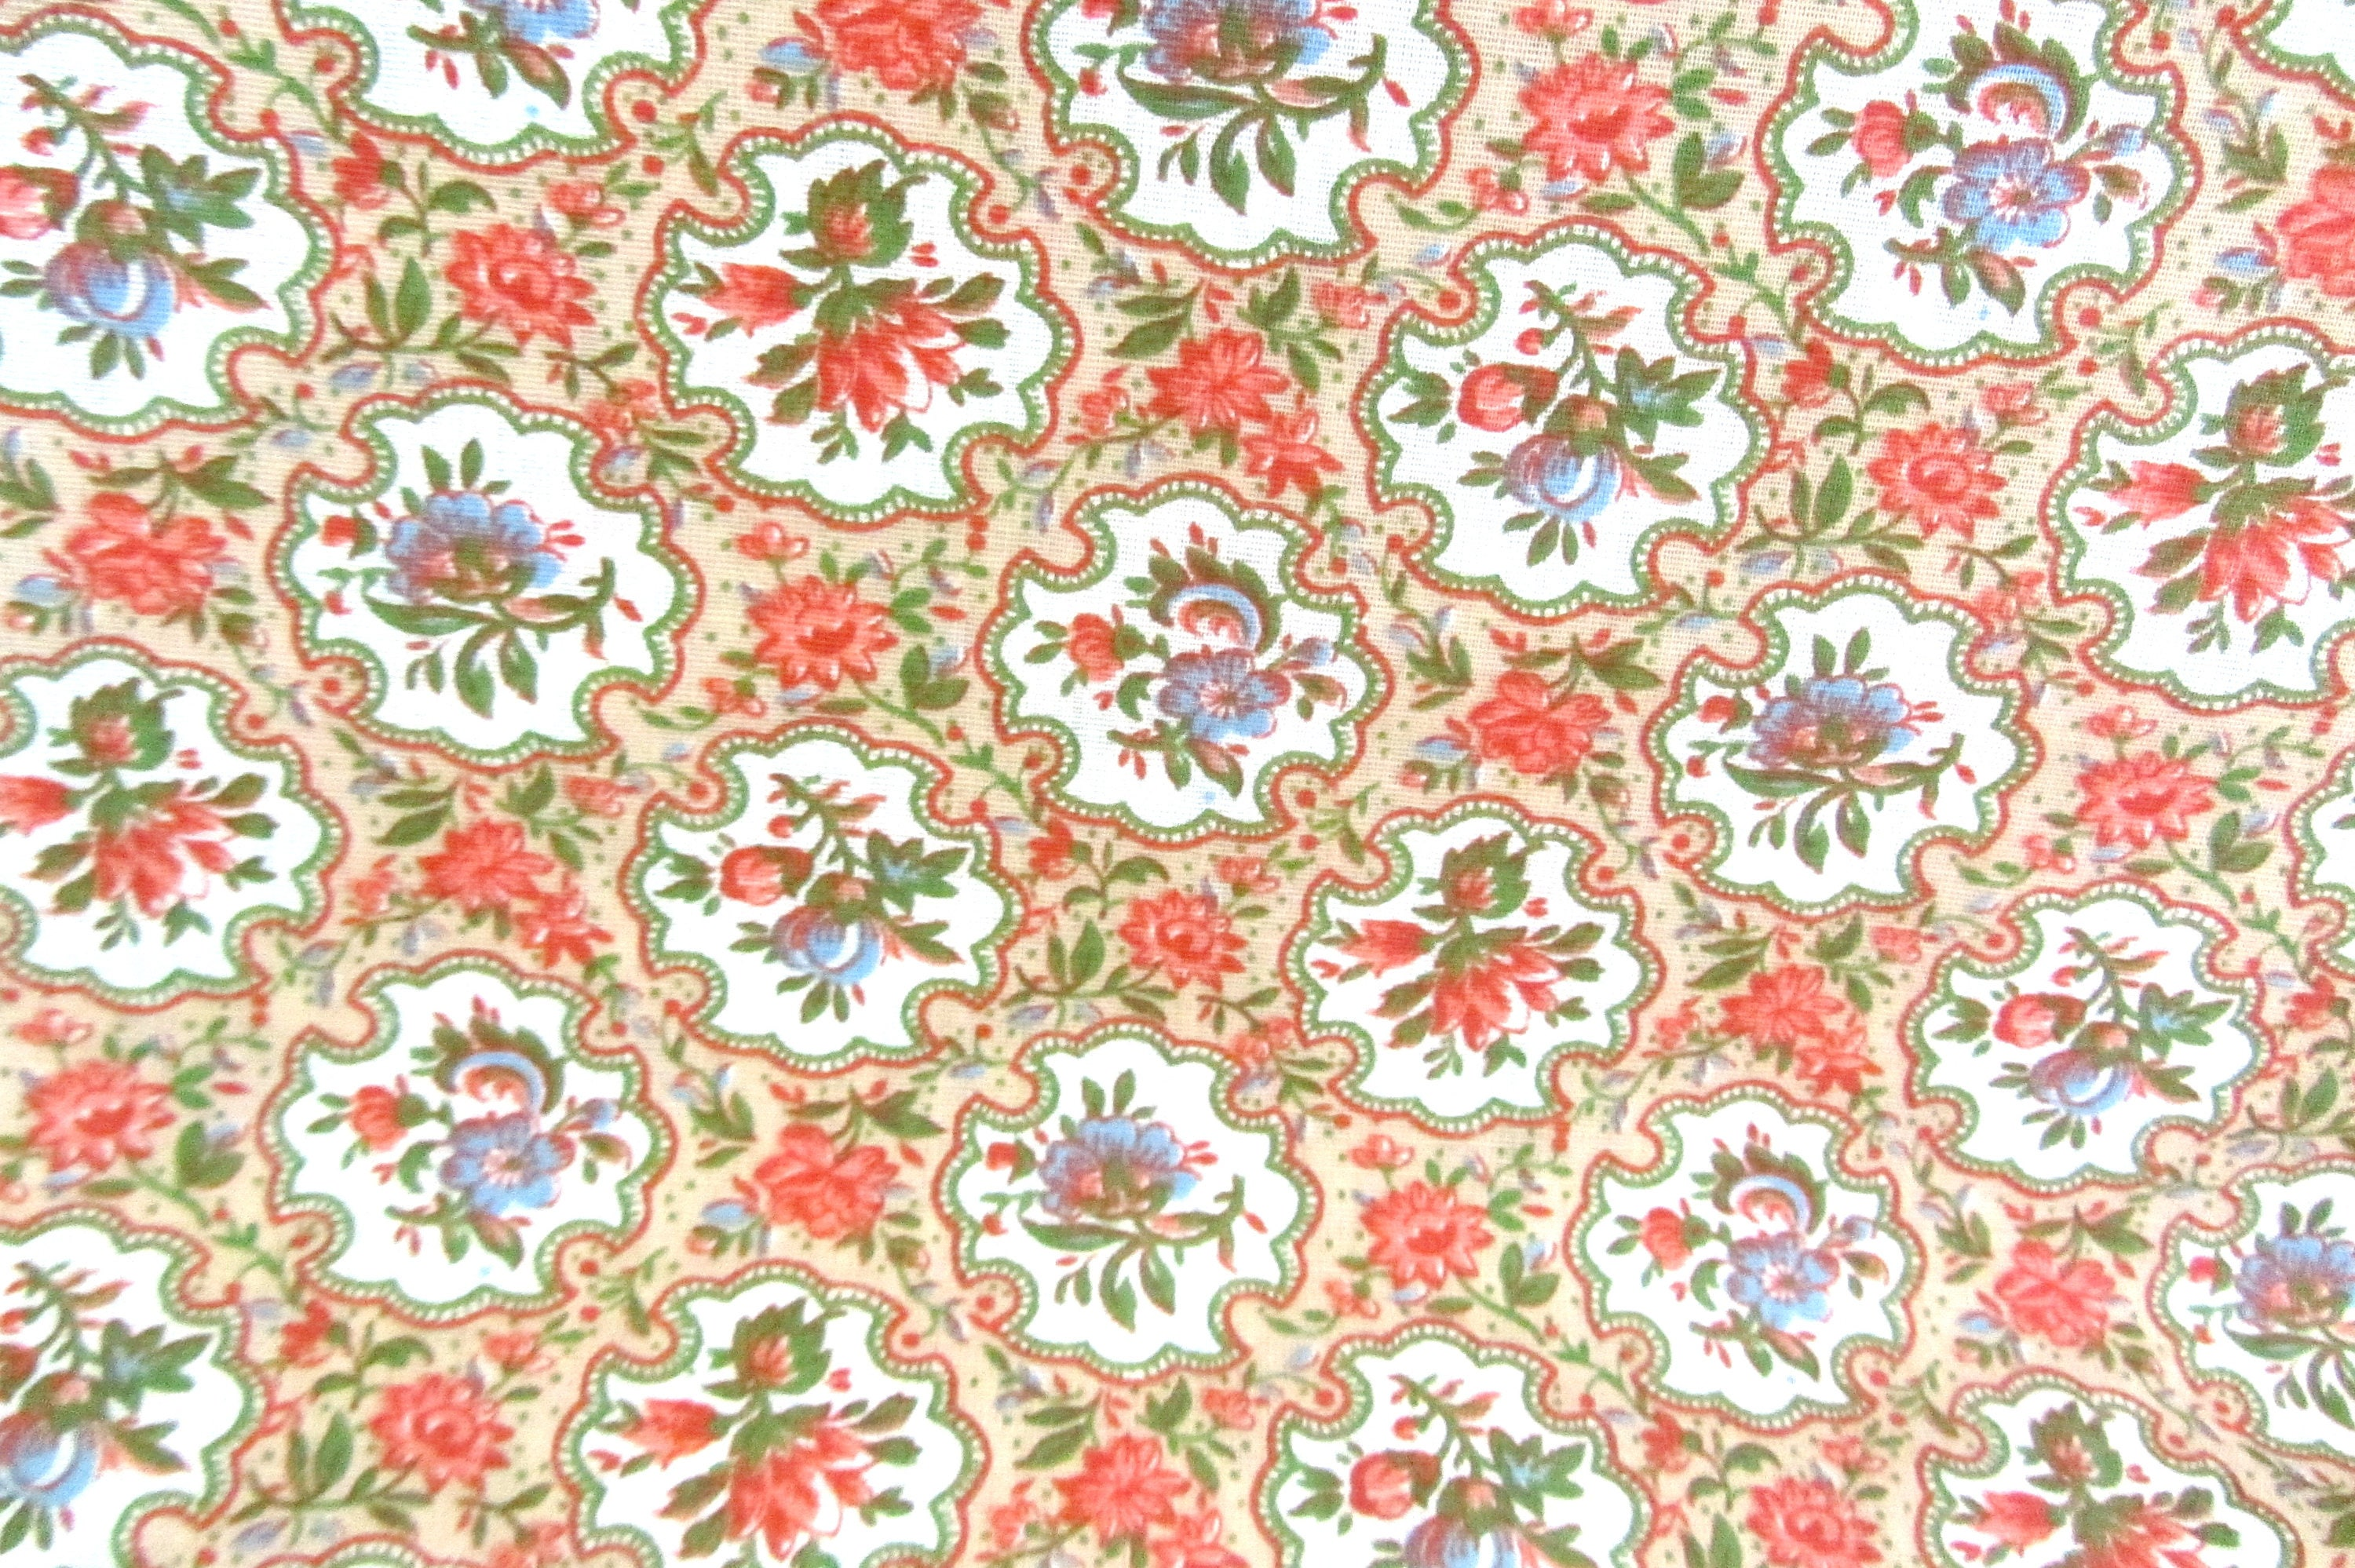 Cotton fabric 3 5 yds craft fabric fabric supplies for Fabric supply